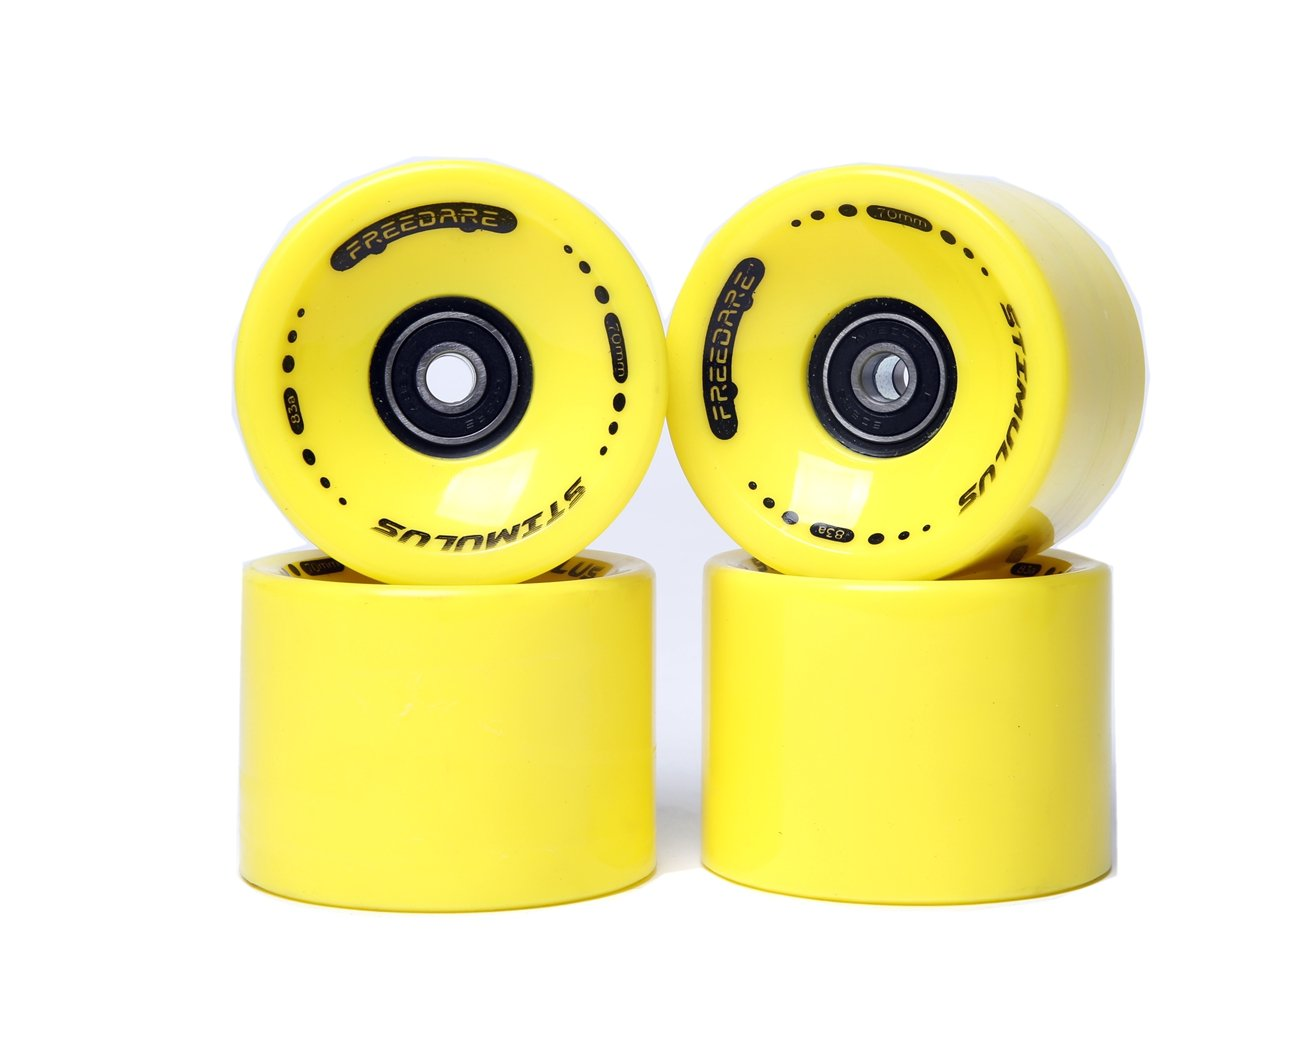 FREEDARE 70mm Longboard Wheels with ABEC-7 Bearings and Spacers(Yellow,Set of 4) by FREEDARE